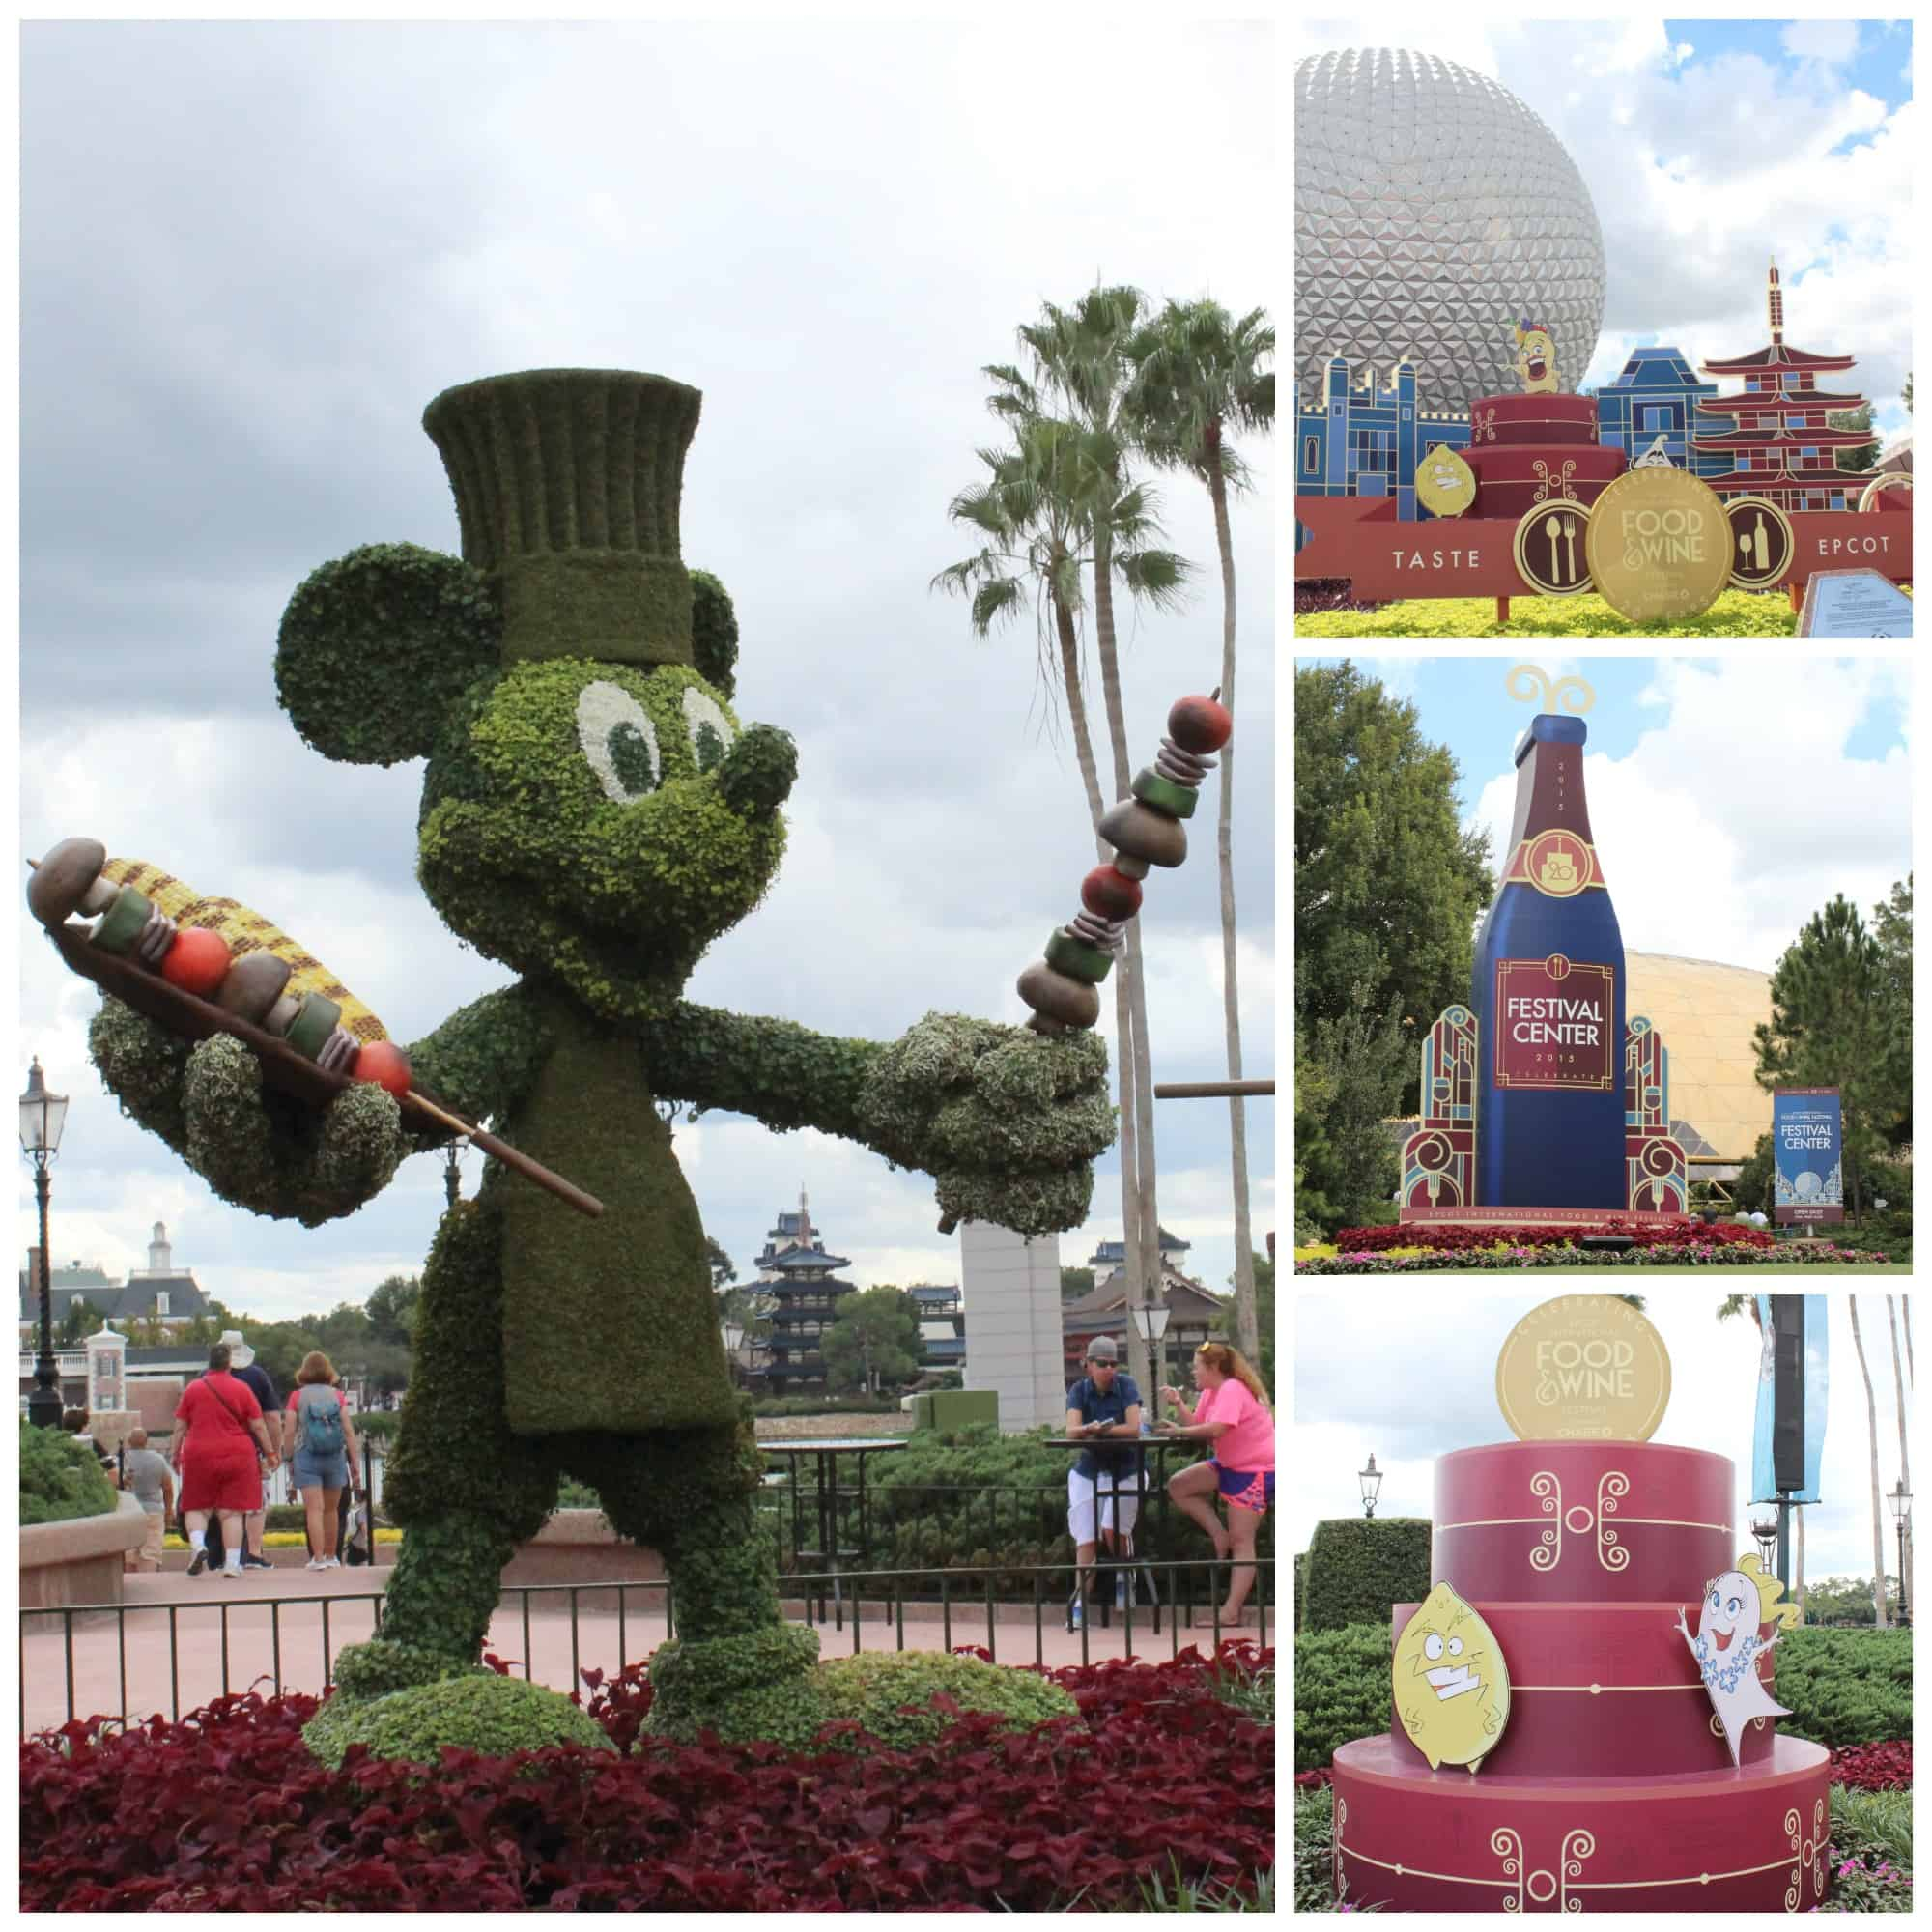 Recipe For Food And Wine Festival In Epcot